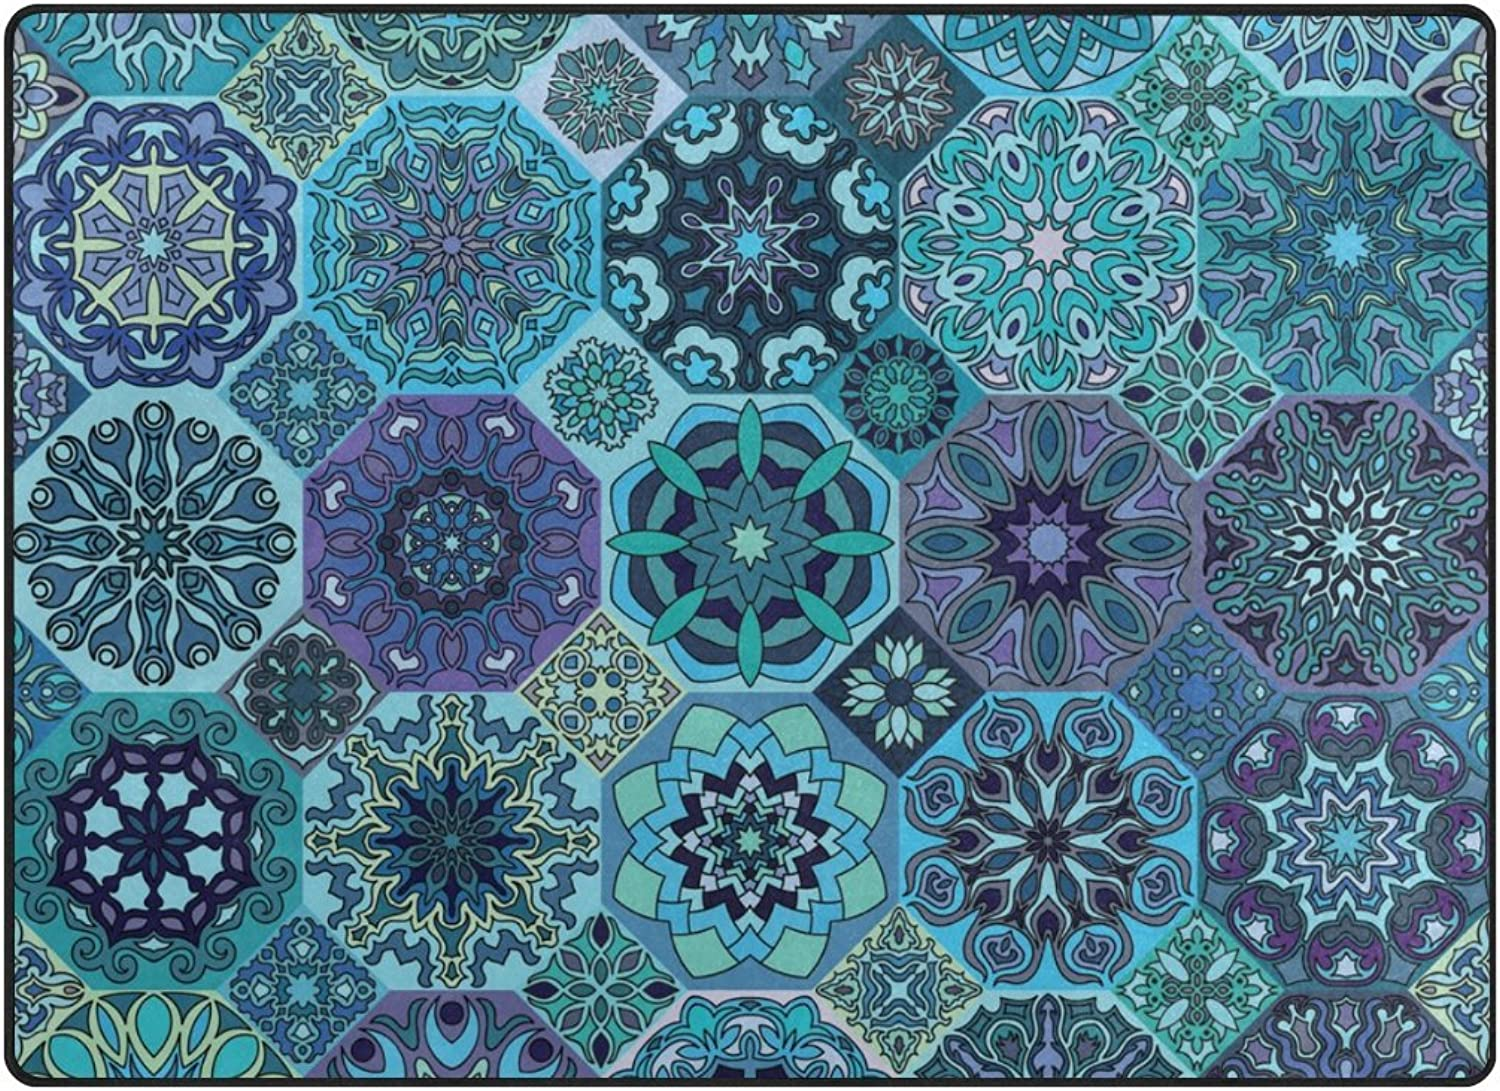 SUABO Area Rug 80 x 58 inches Non-Slip Floor Mat Vintage Floral Printed Doormats for Living Room Bedroom